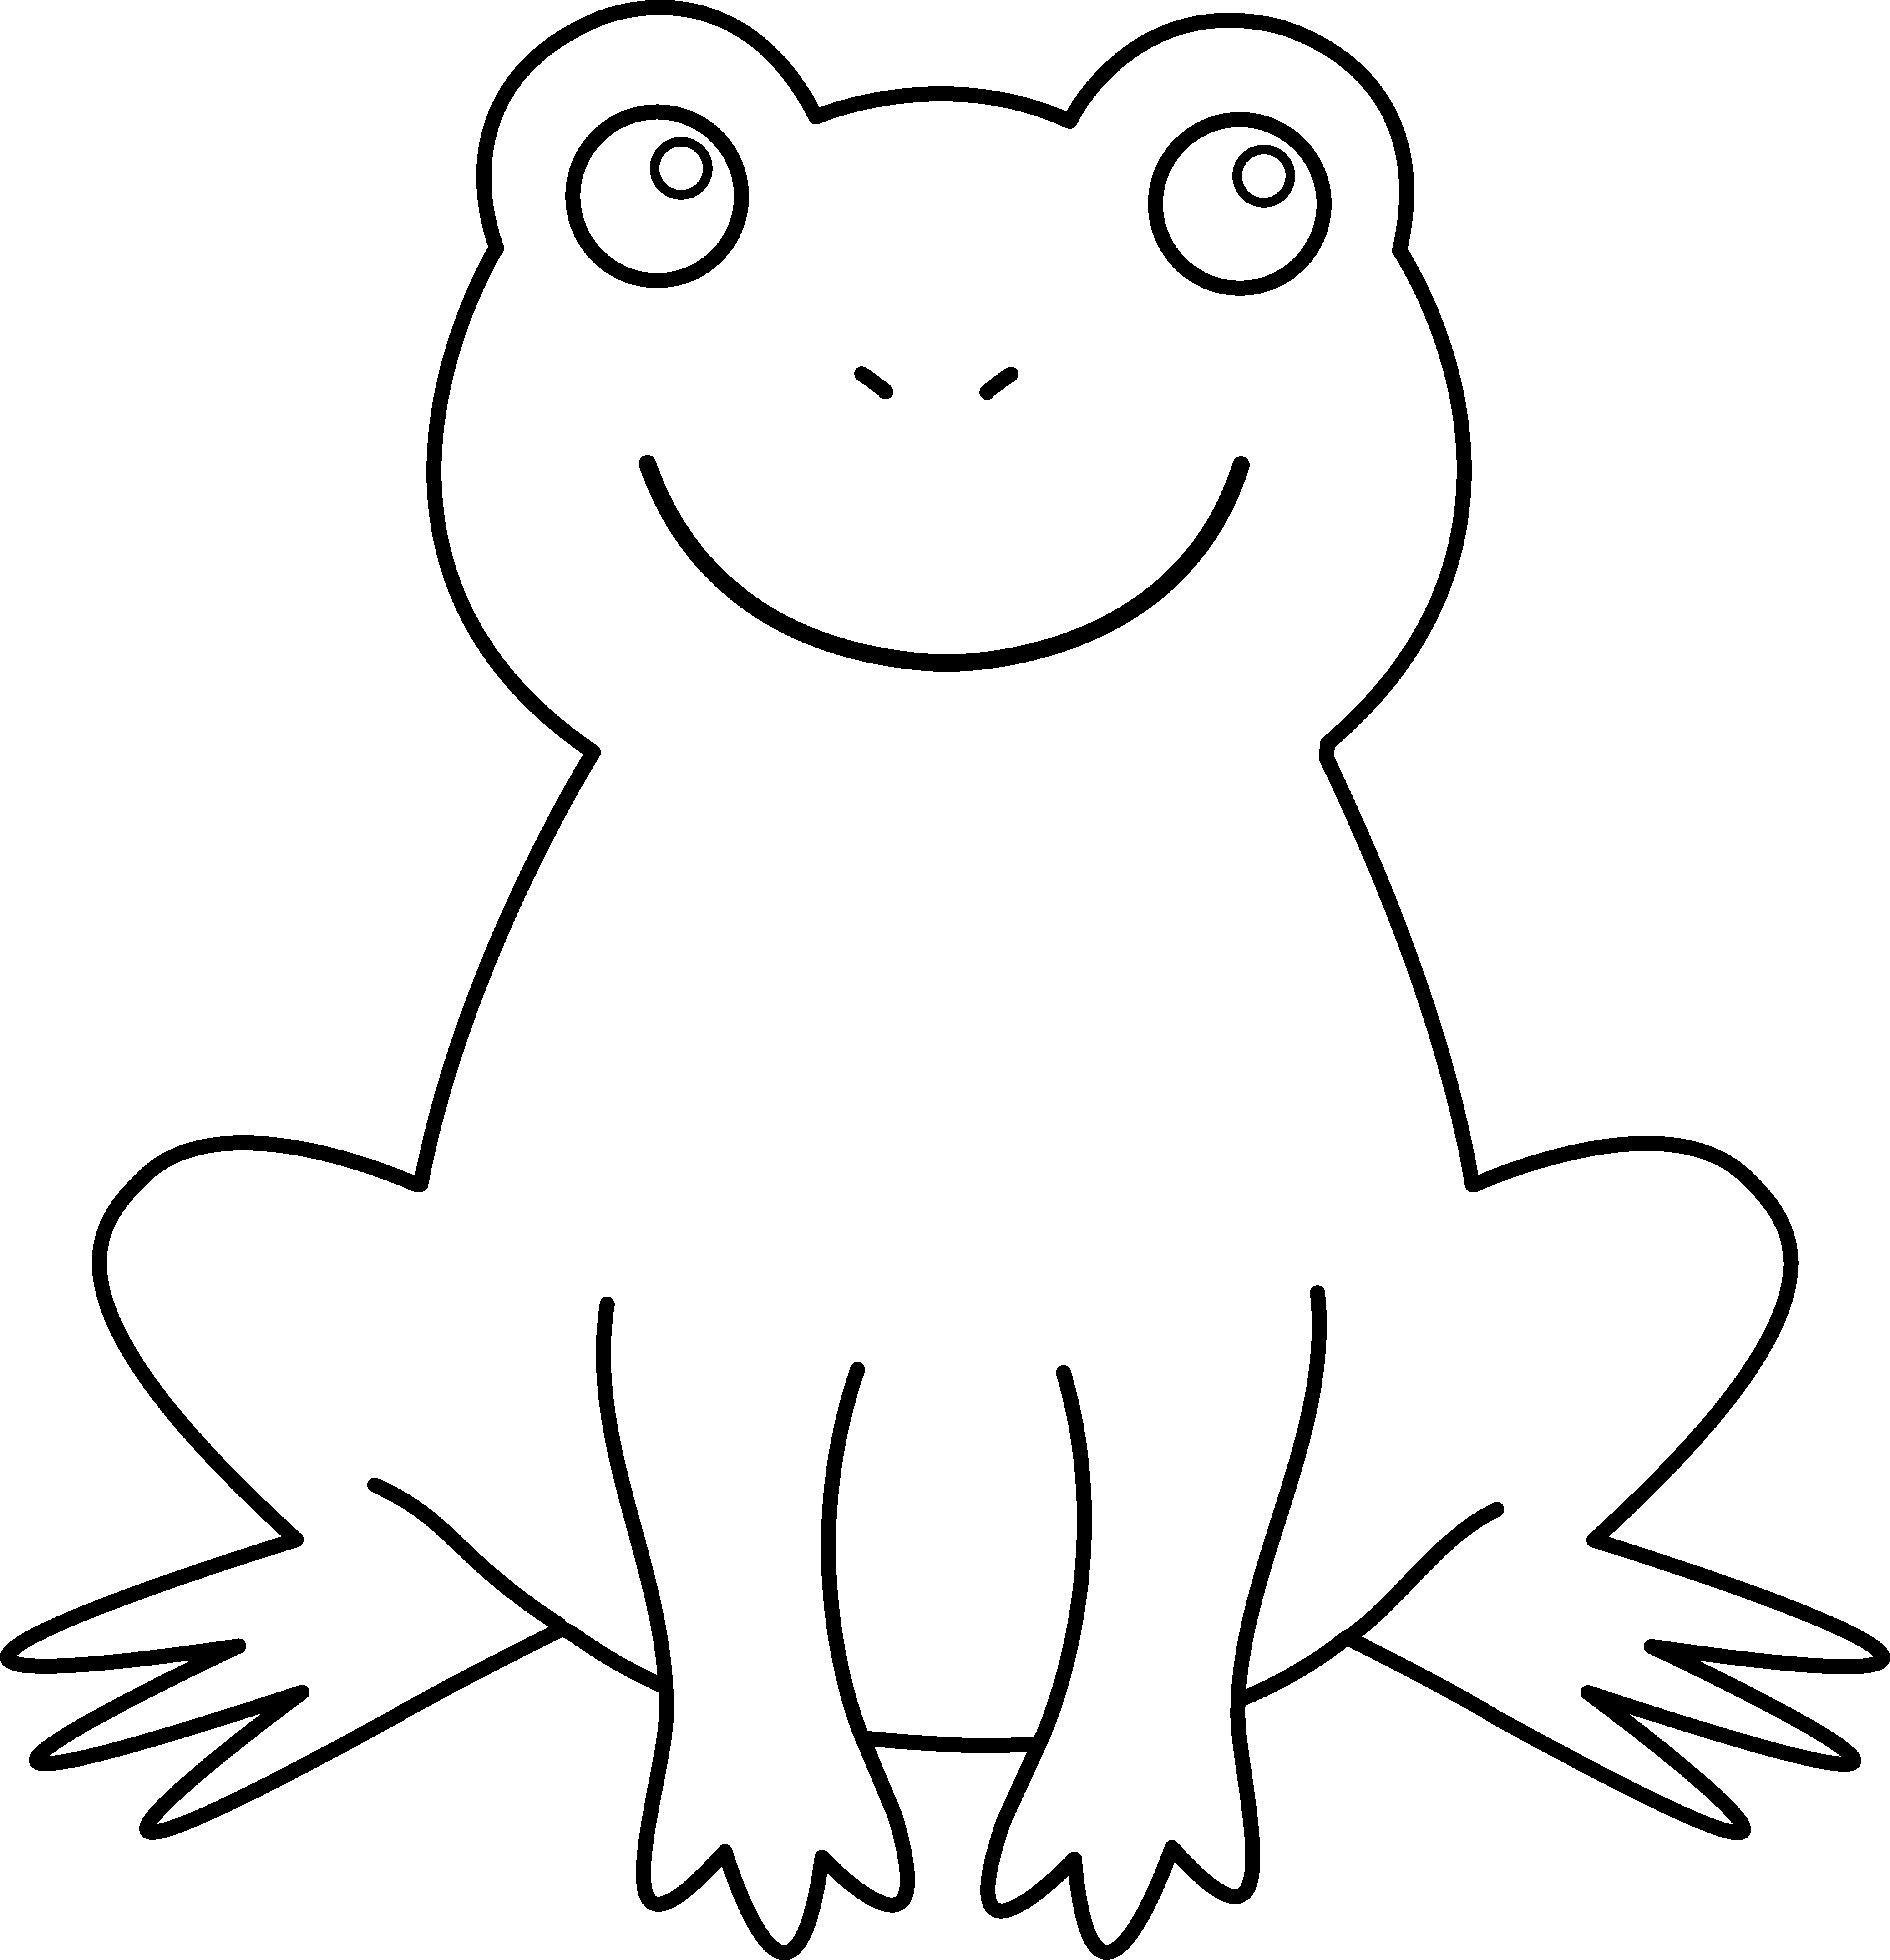 Tree Frog Clip Art Black And White.